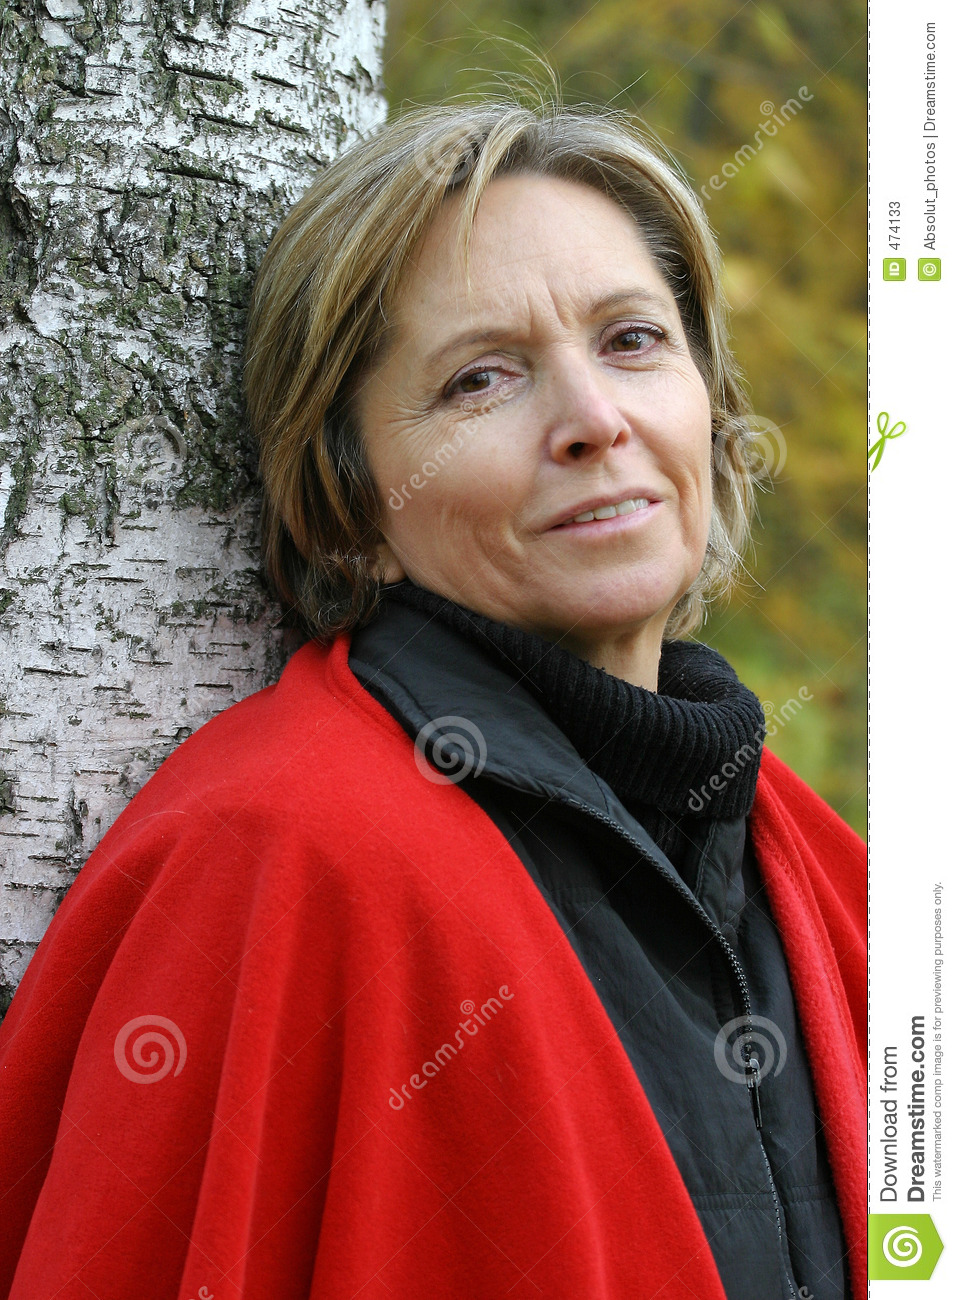 Smiling middle-aged woman